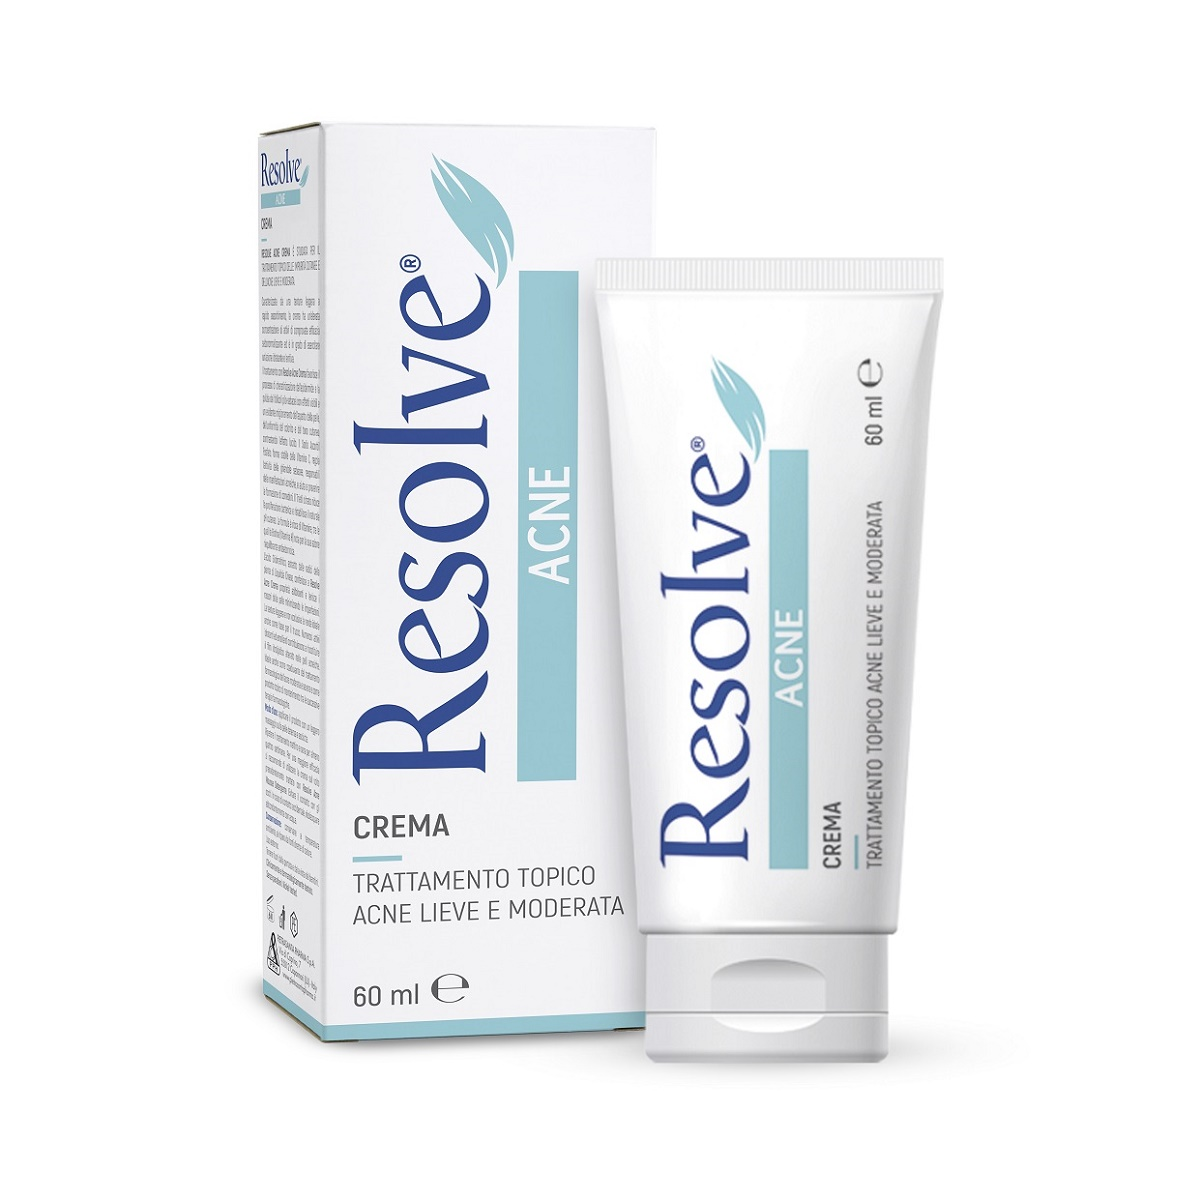 Cremă Resolve Acne, 60 ml, Pietrasanta Pharma